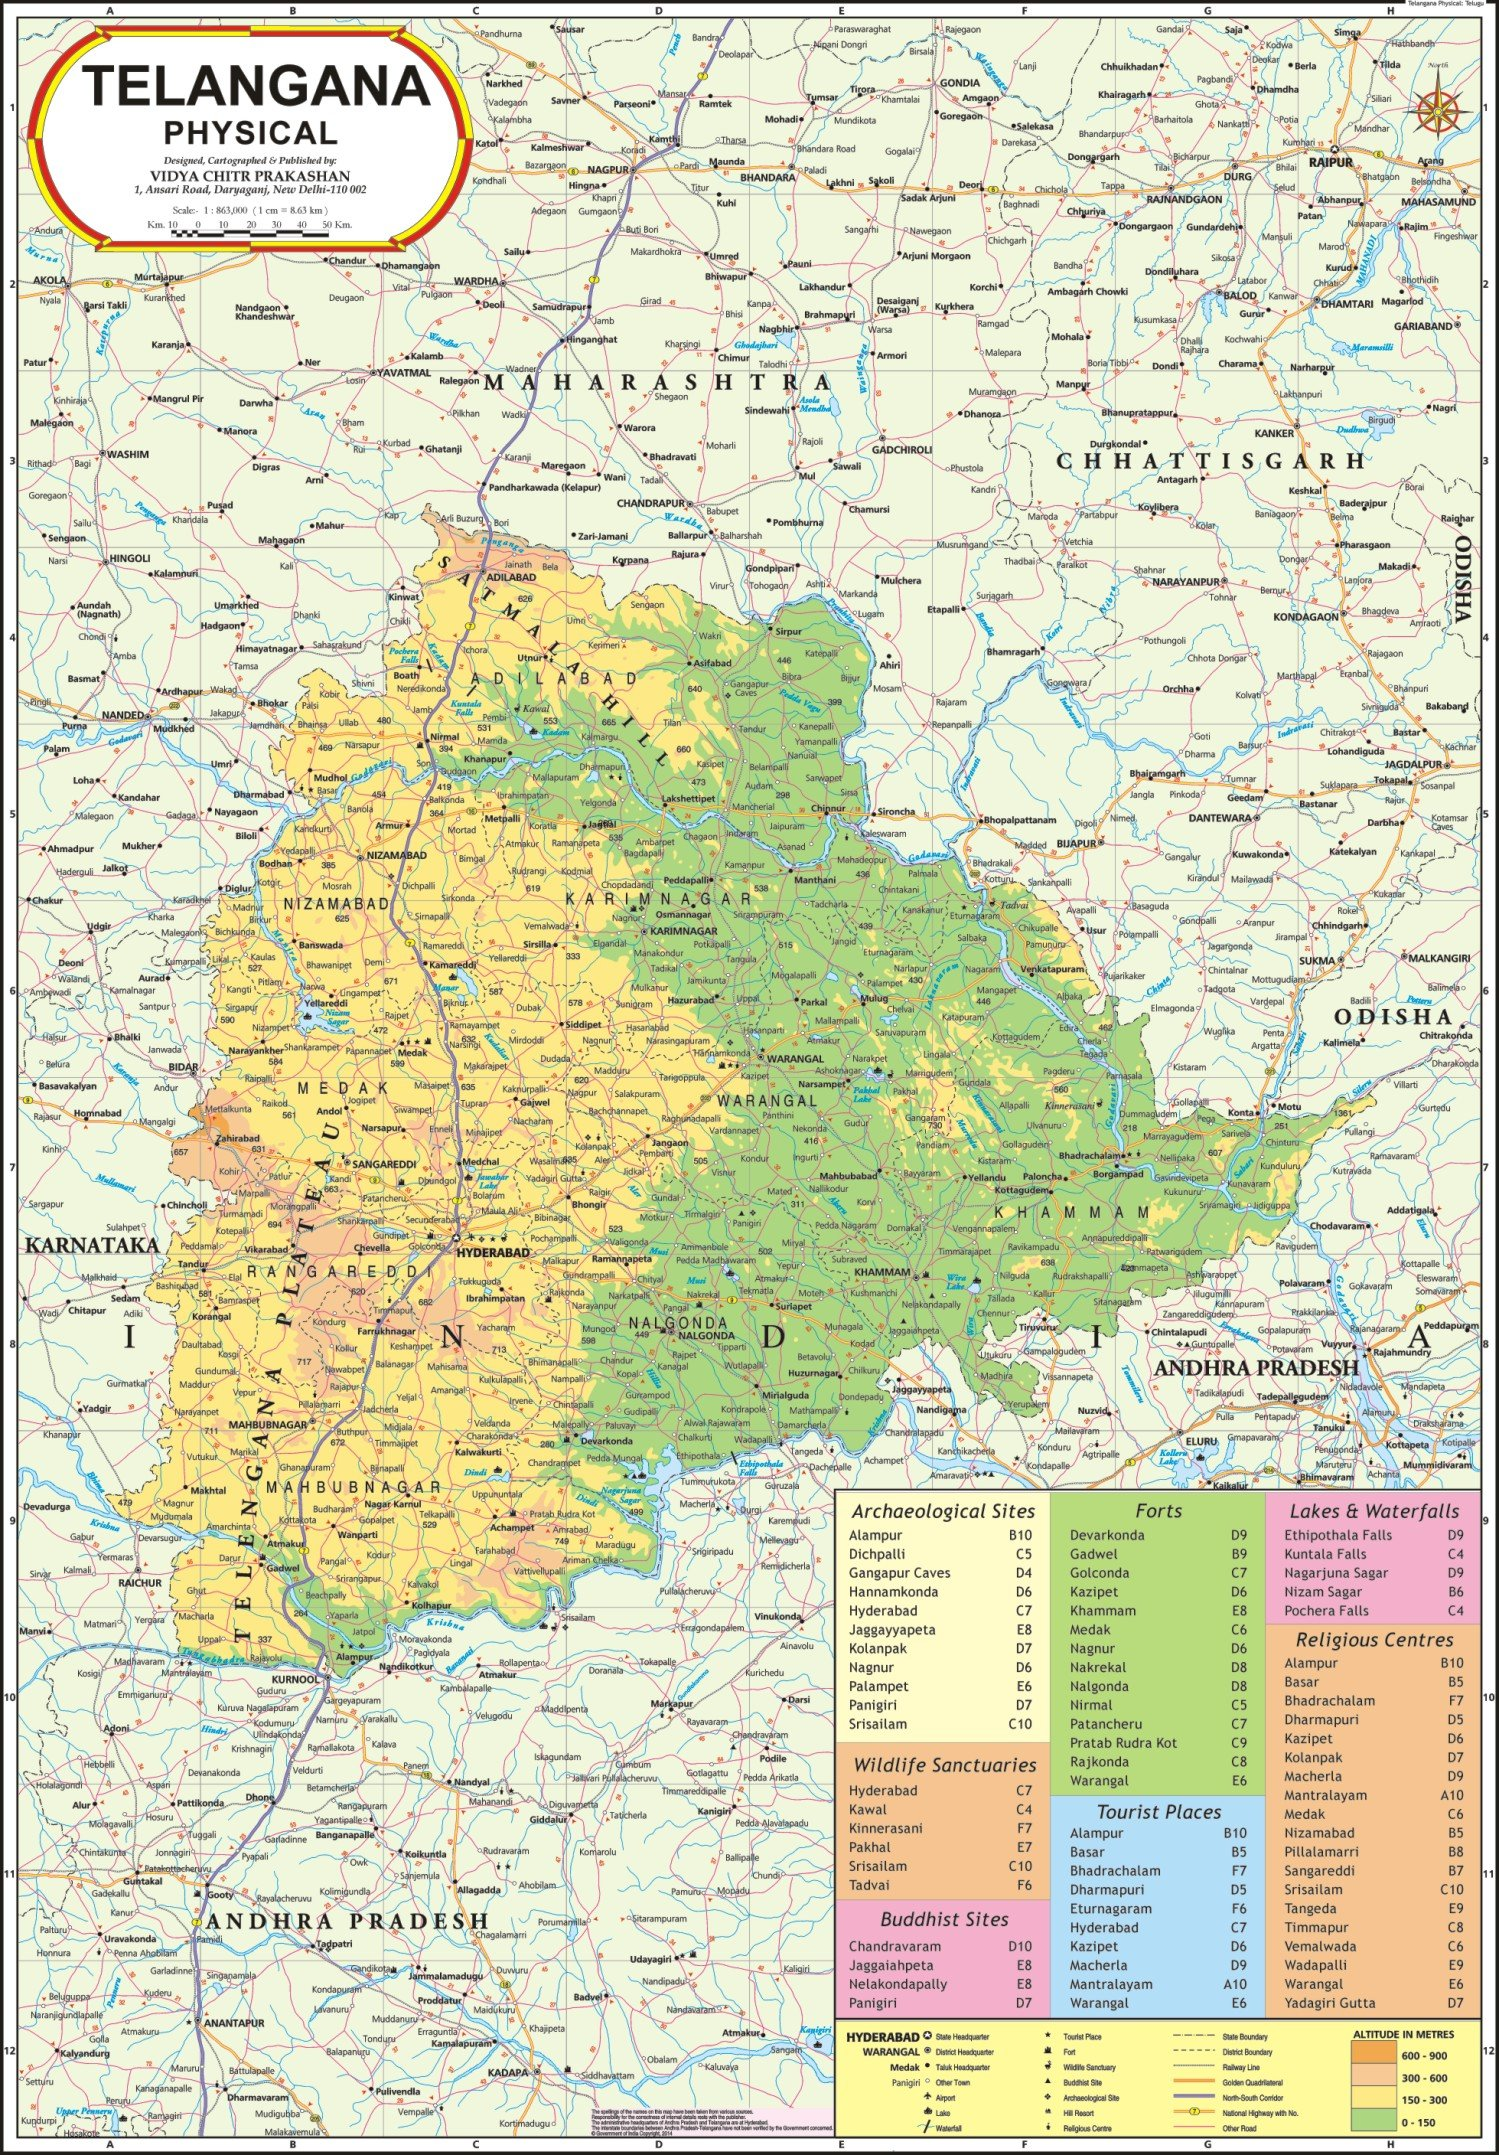 Buy Telangana Physical Map Book Online At Low Prices In India | Telangana Physical  Map Reviews U0026 Ratings   Amazon.in